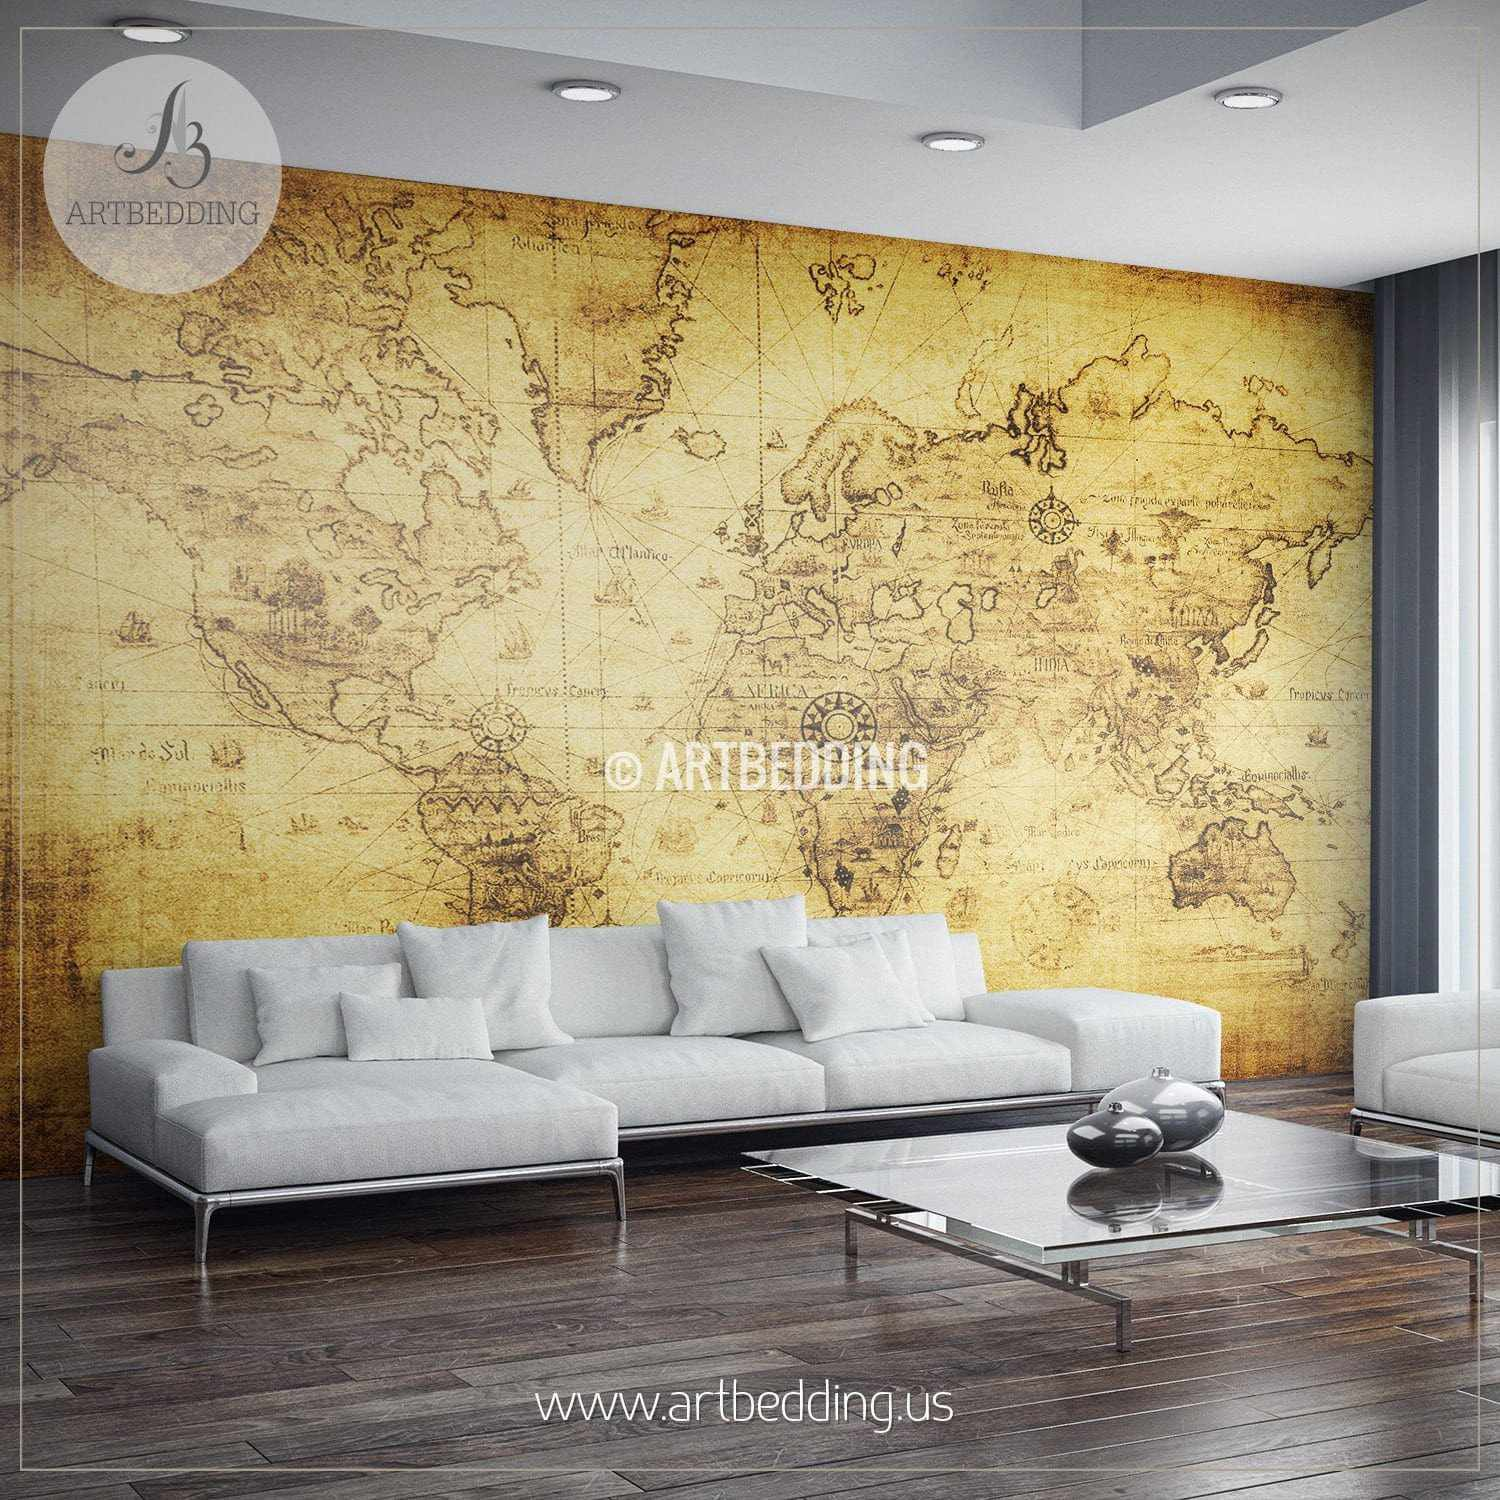 Vintage Map Wall Mural, Self Adhesive Photo Mural - ARTBEDDING